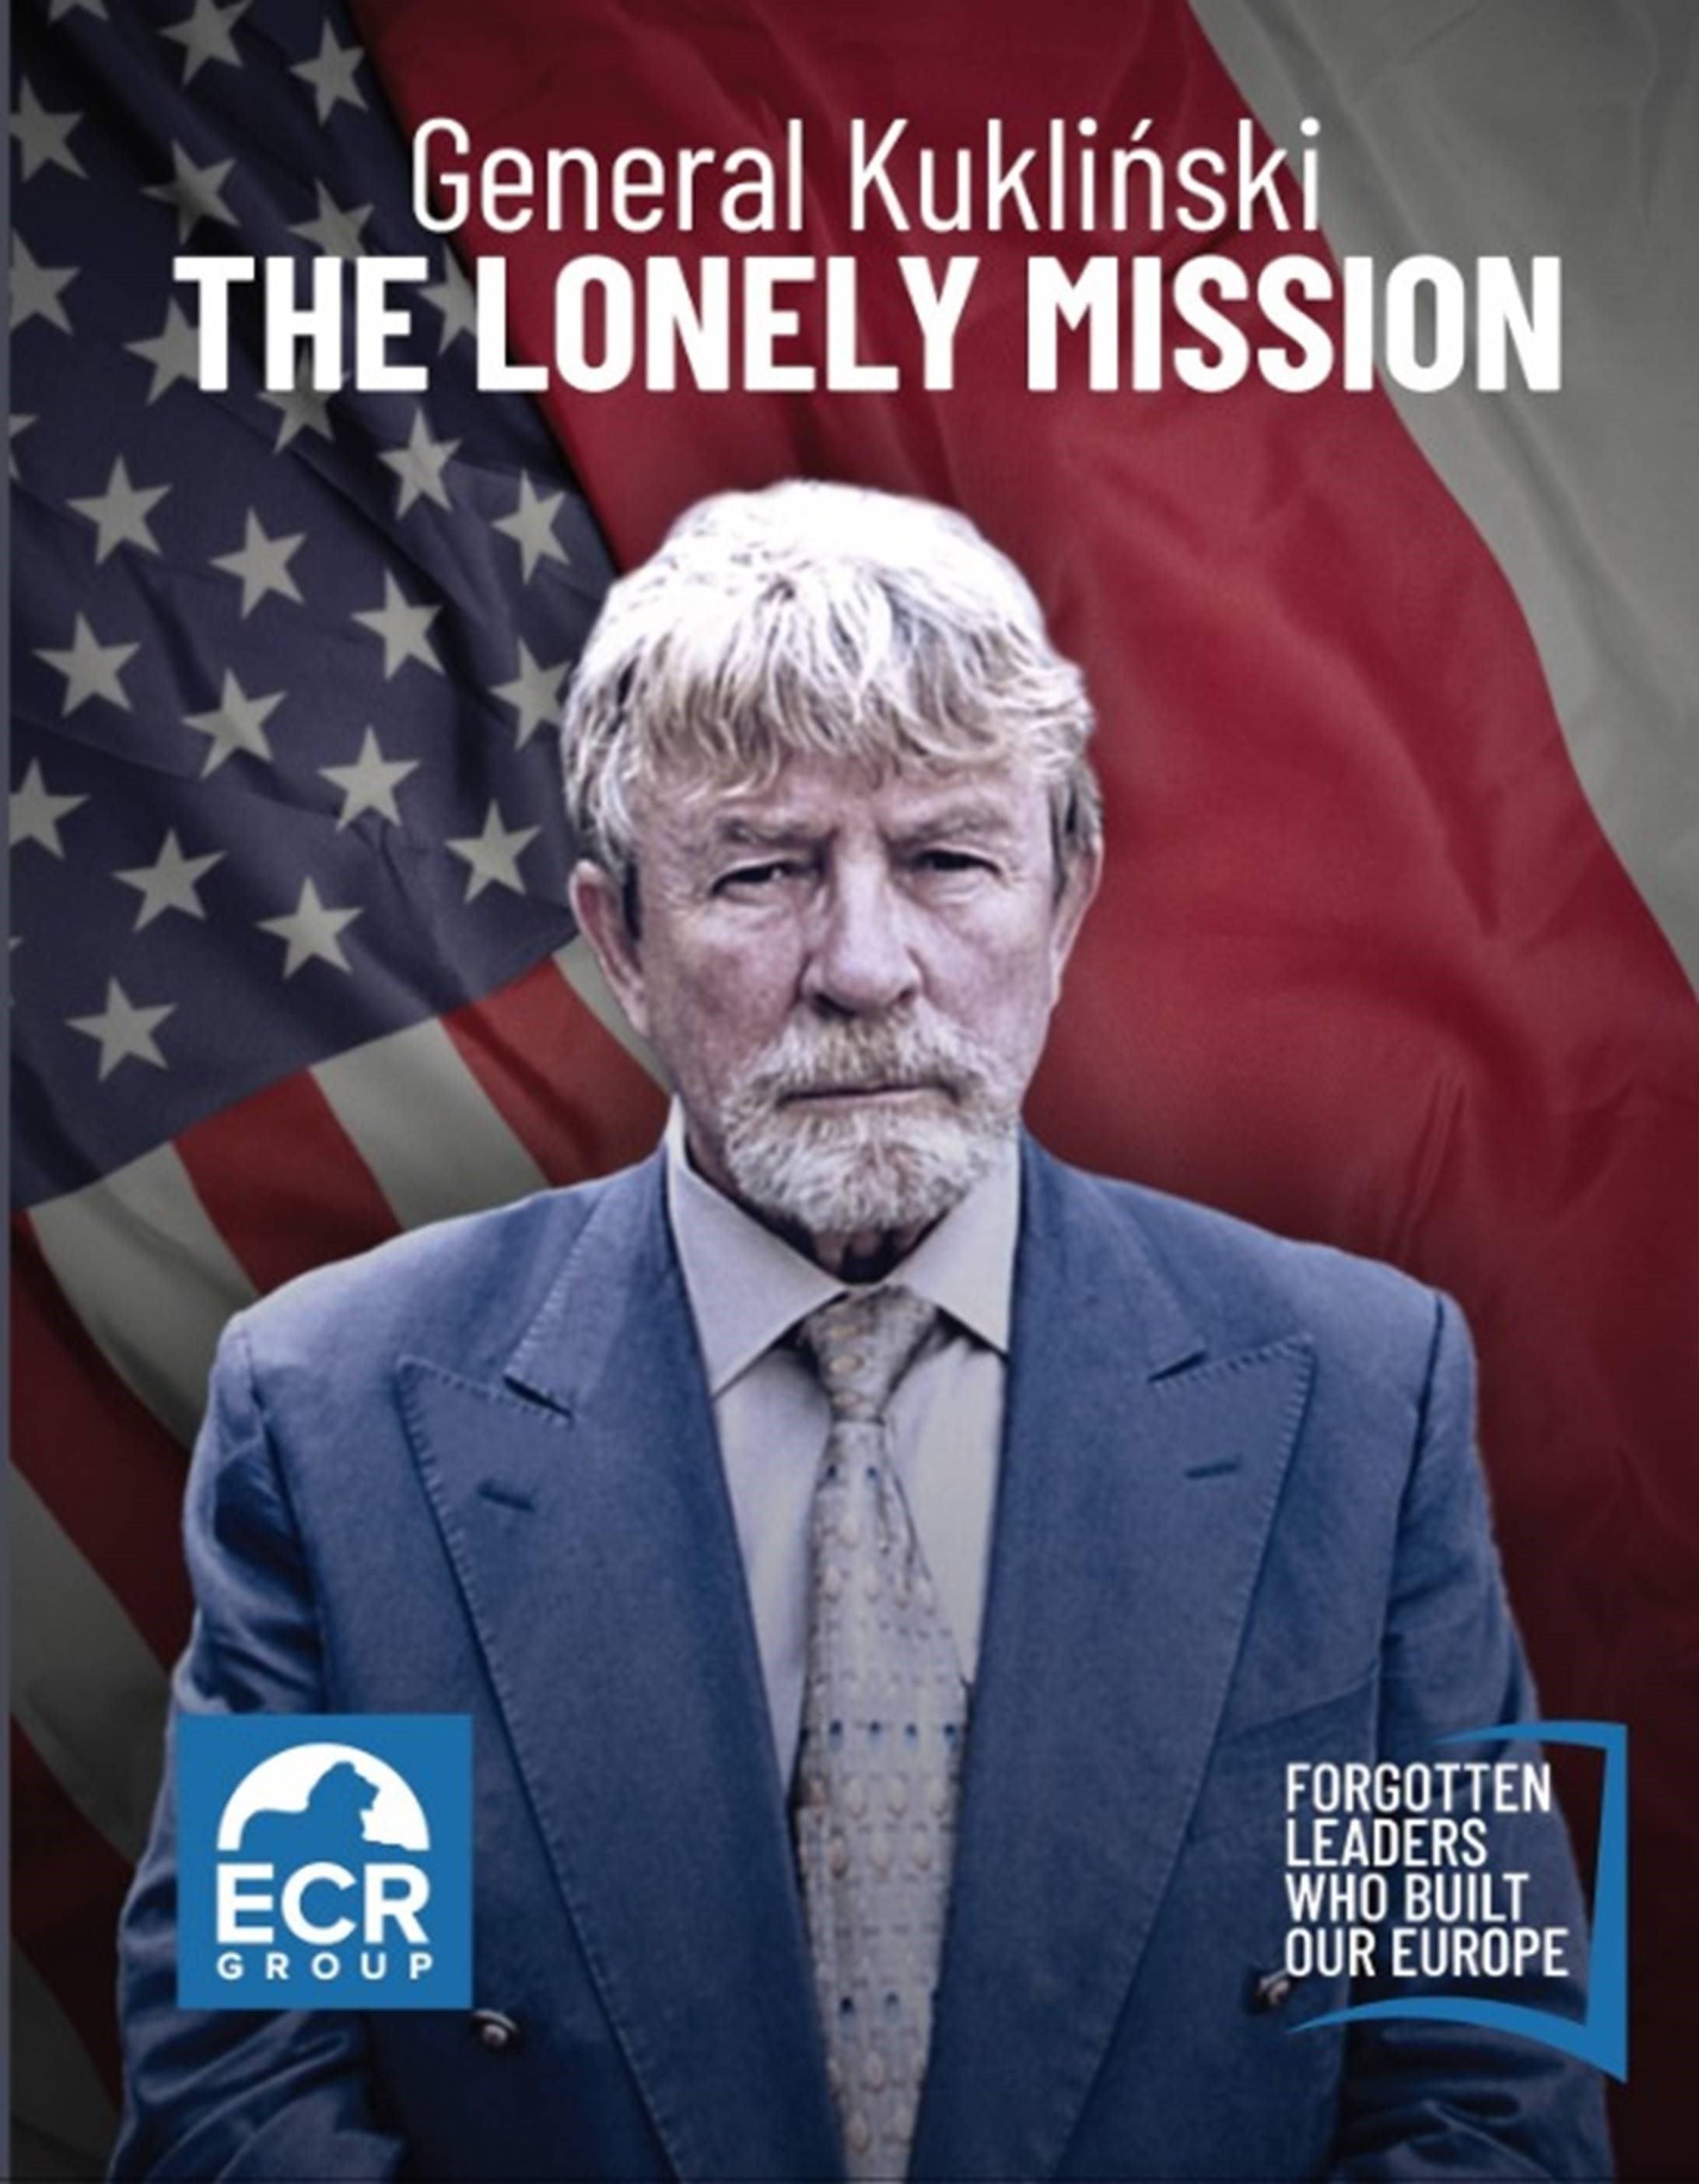 General Kuklinski. The Lonely Mission